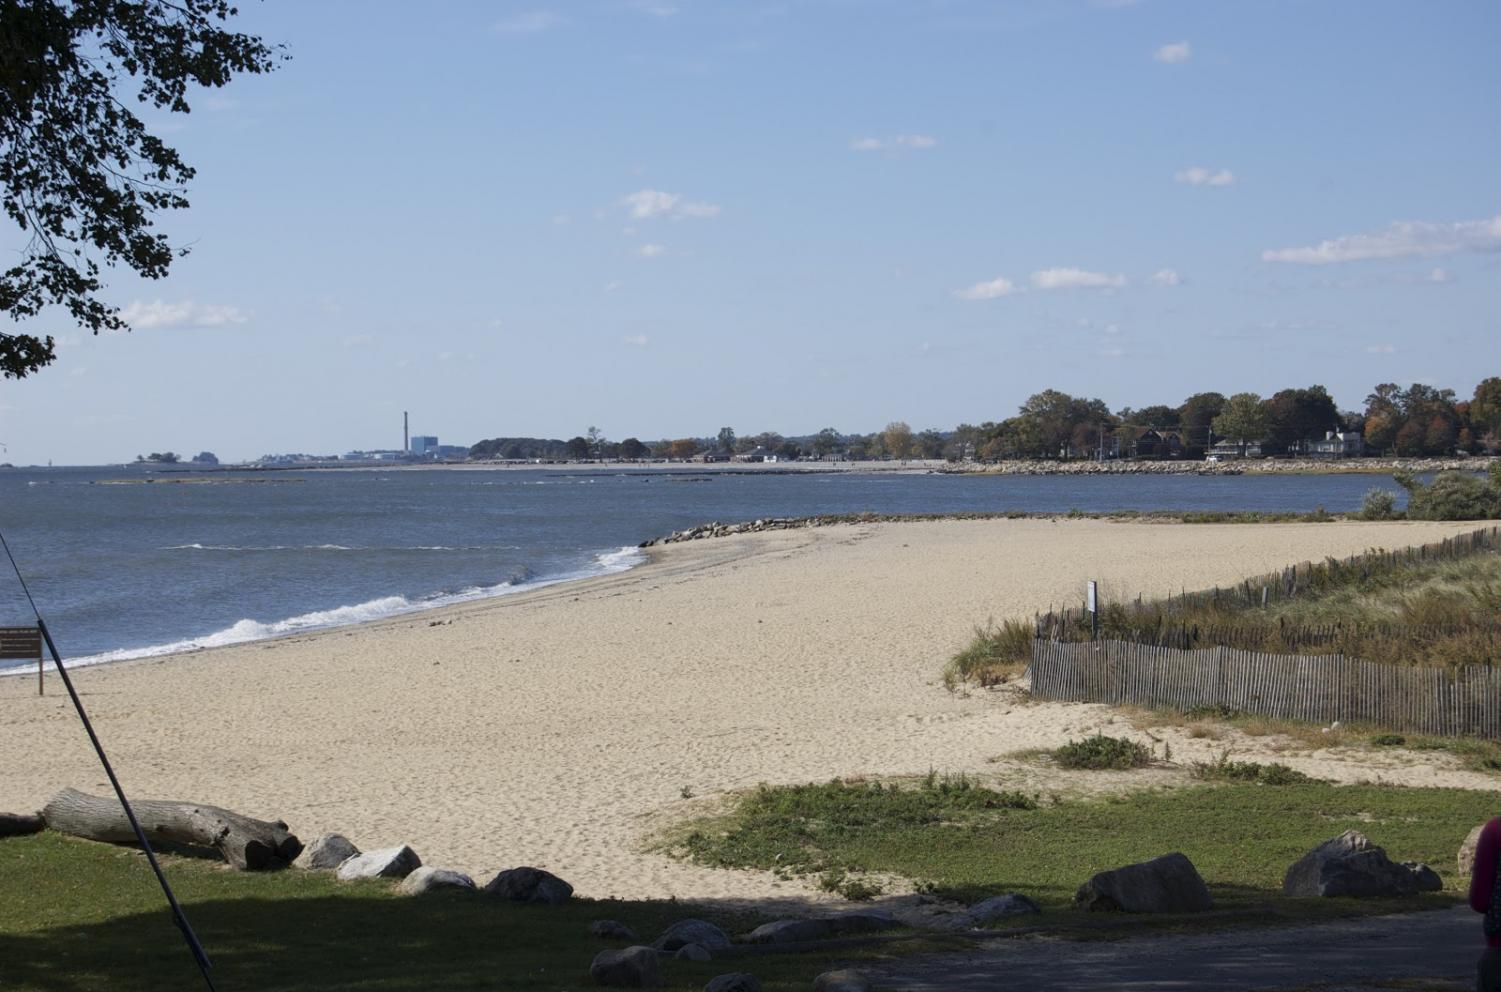 Sherwood Island State Park in Westport, Connecticut is one of many protected areas that the state legislature could sell off without public consent.